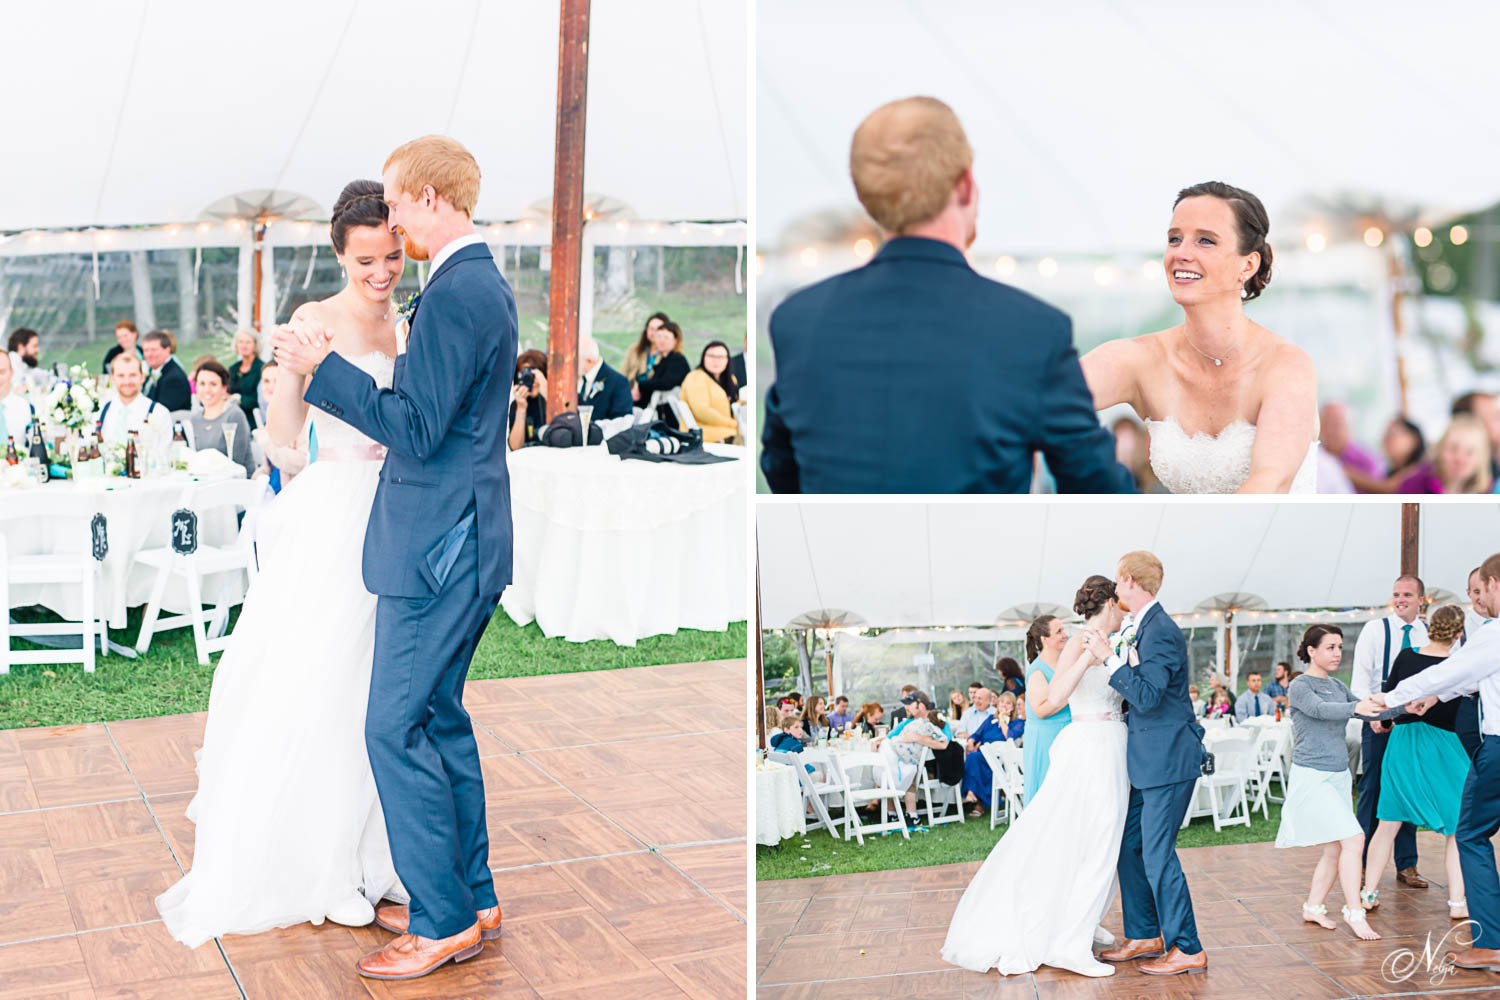 newlyweds first dance under a tent